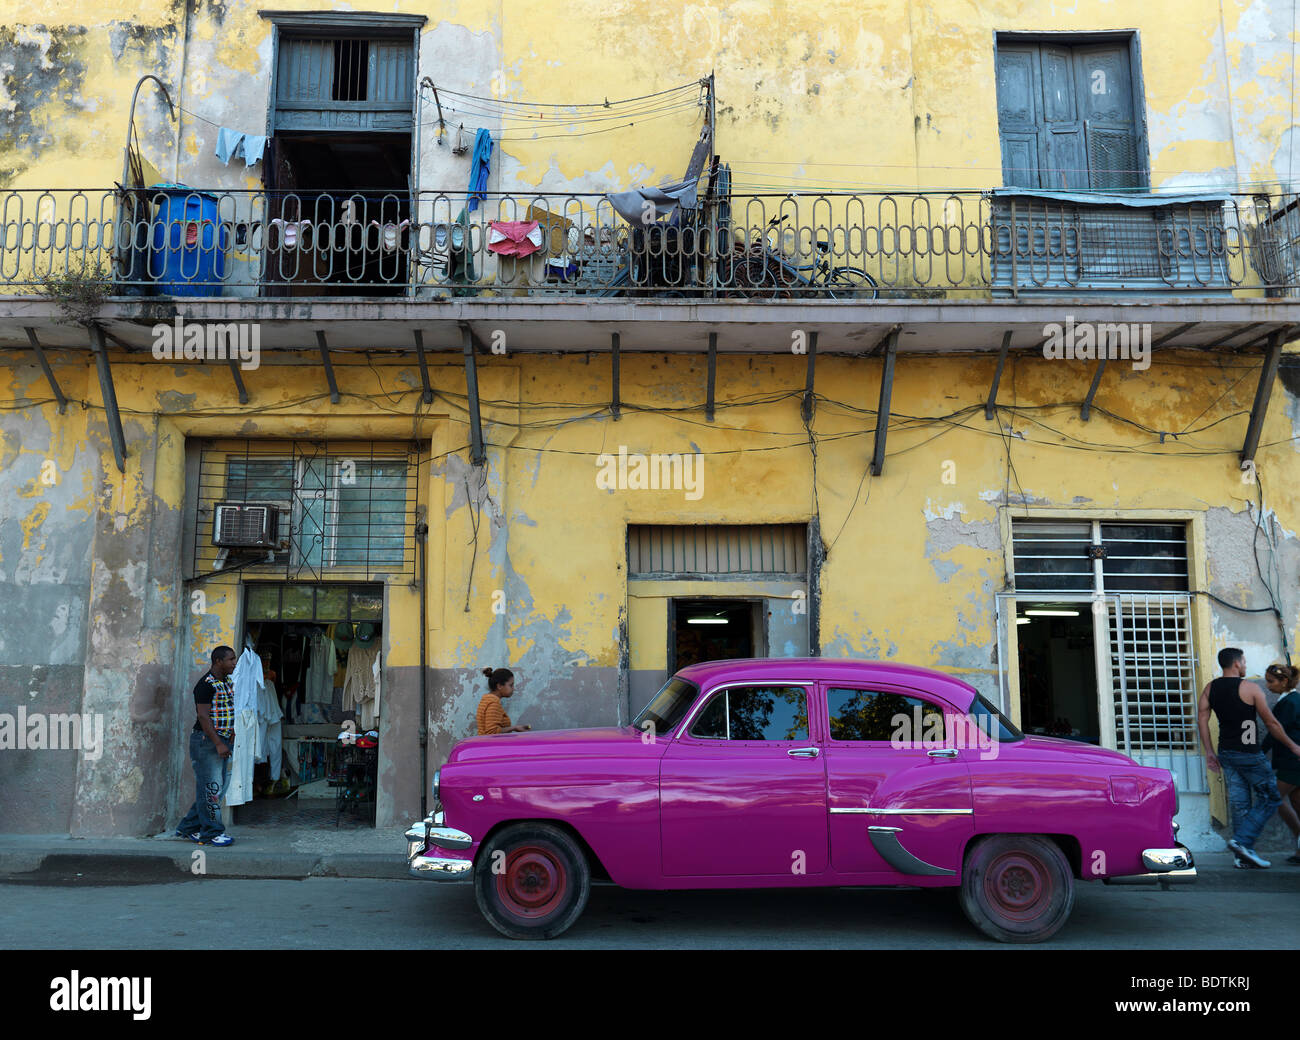 A historic car in the streets of Havanna, Cuba, with its old houses, seen on February 21, 2009 - Stock Image